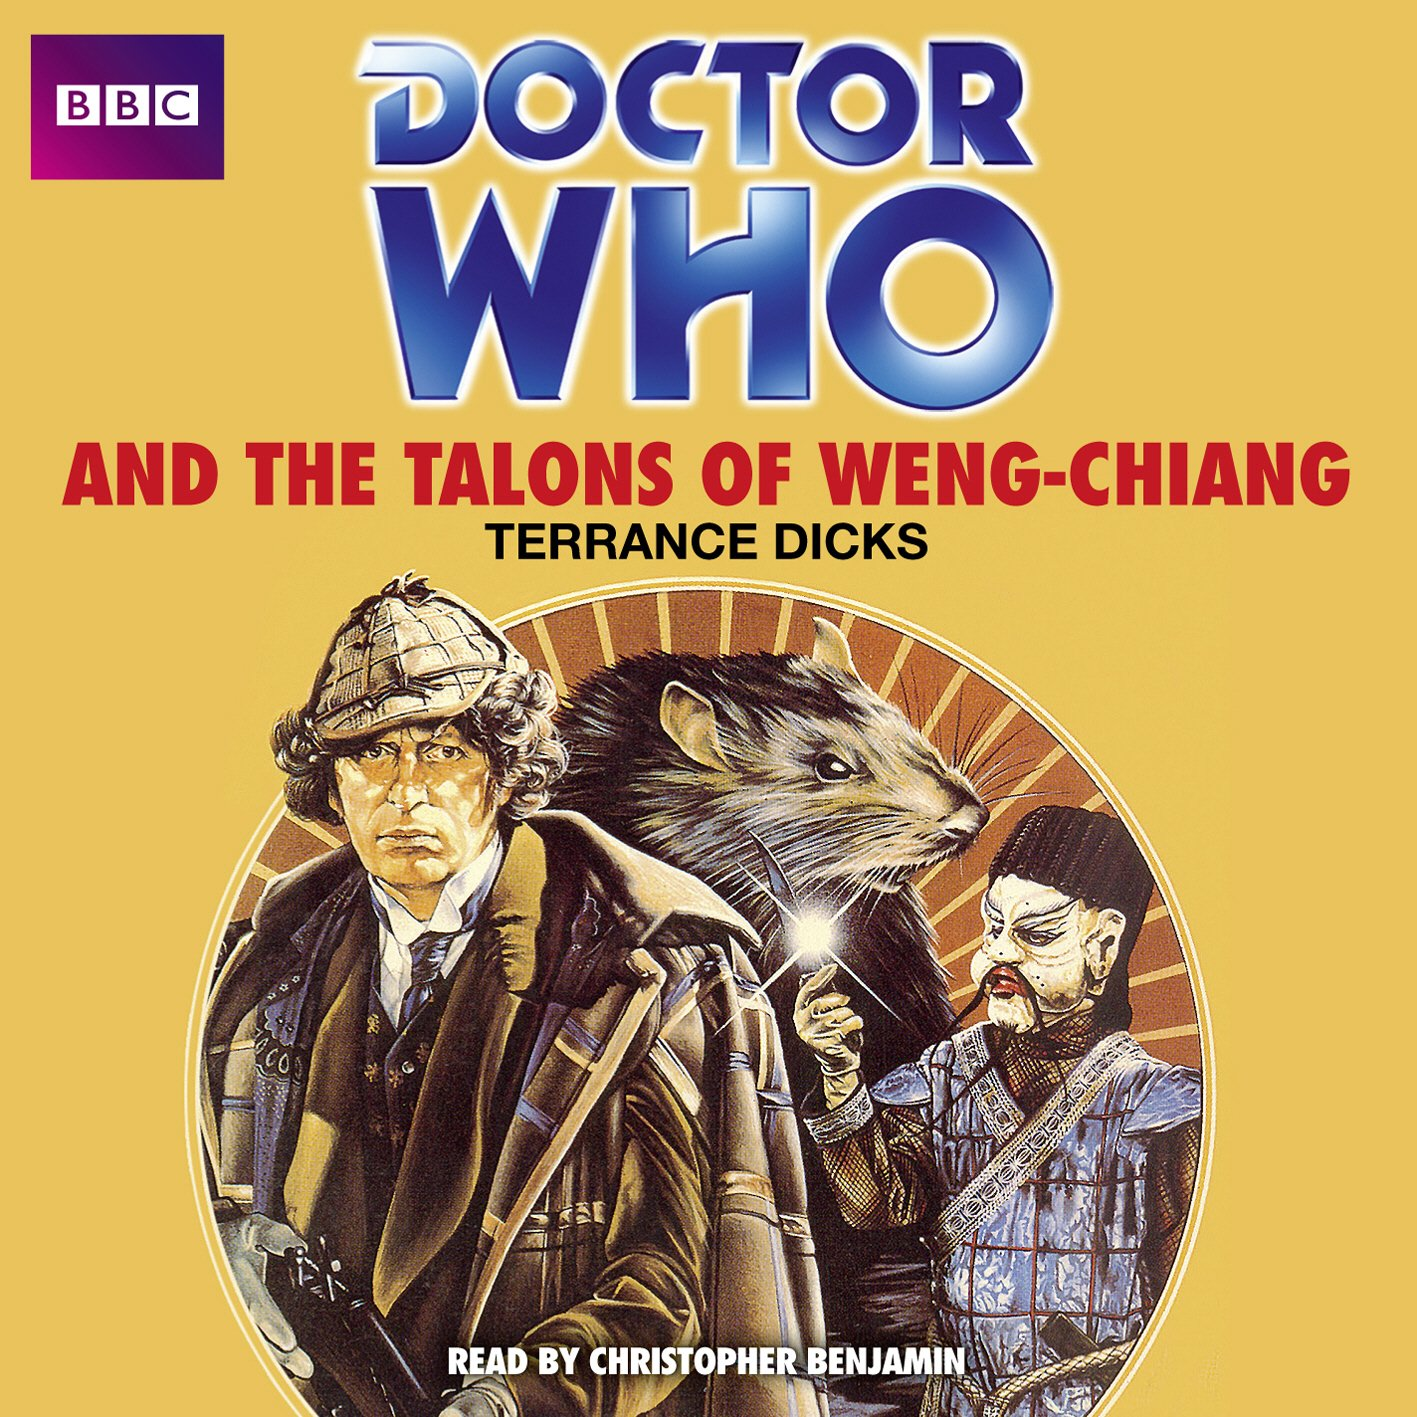 The Talons of Weng Chaing